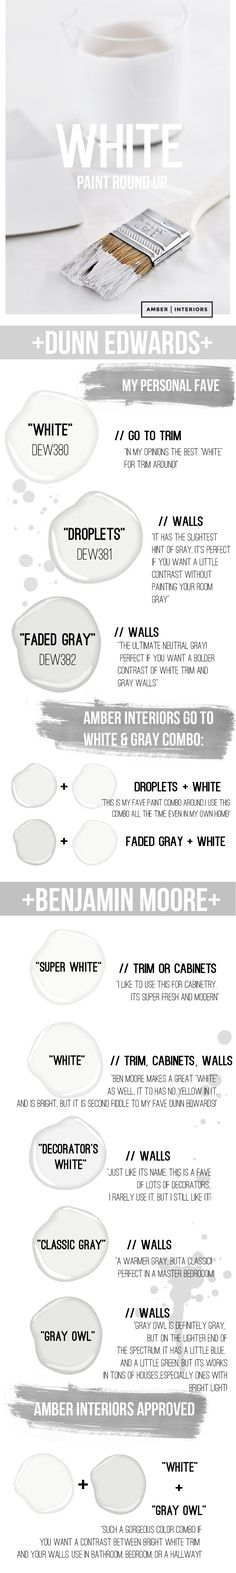 FYI: White Paint -- planning on painting our whole place various shades of white/pale gray; this guide seems super helpful!